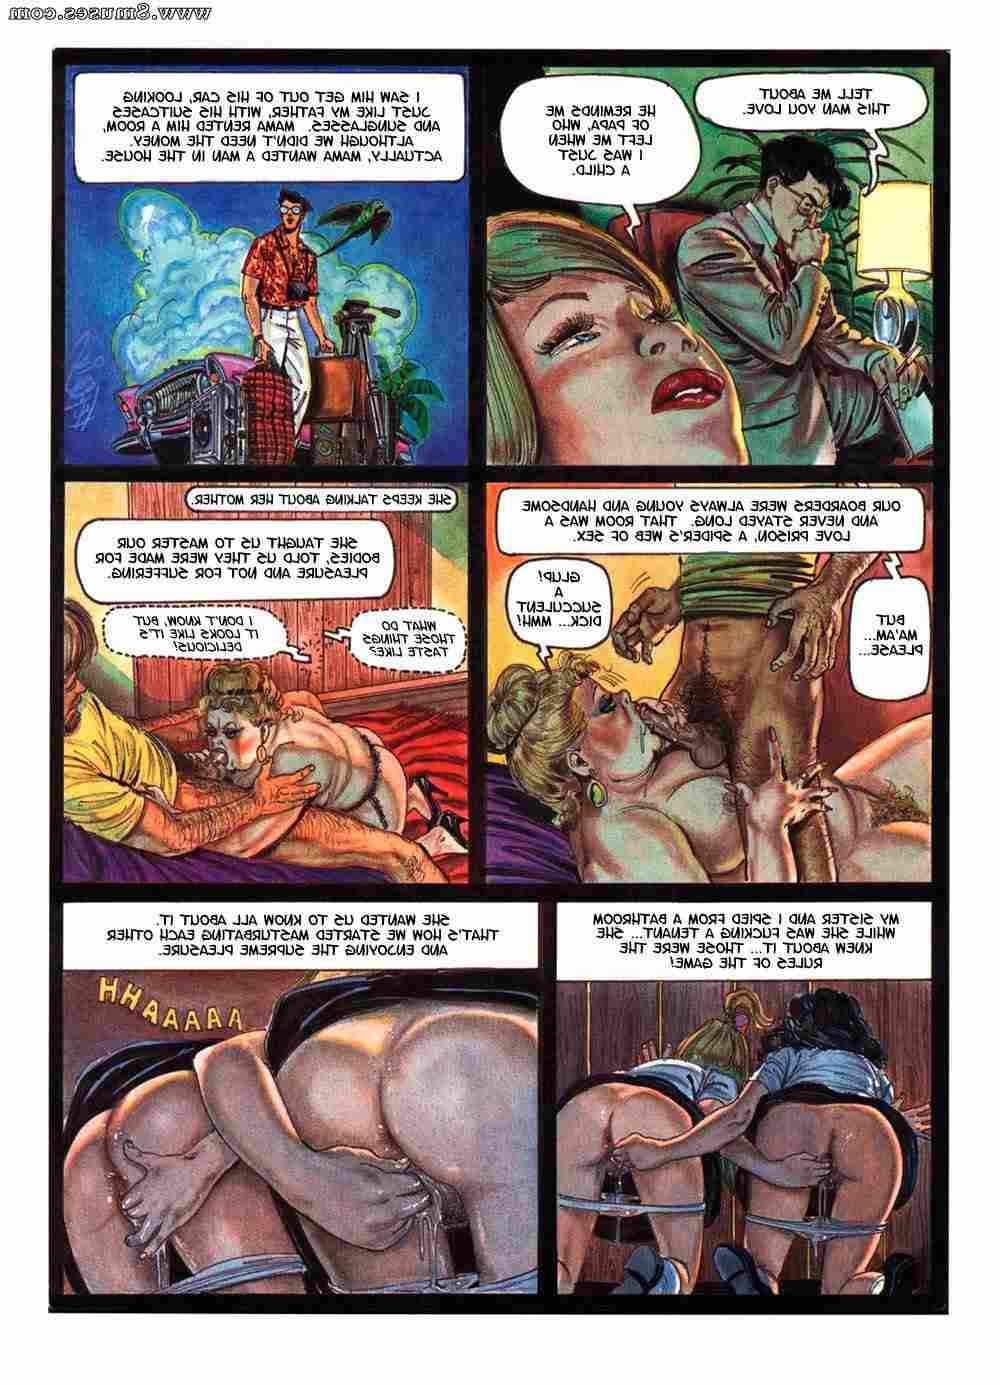 Ferocius-Comics/Forbidden-Flower Forbidden_Flower__8muses_-_Sex_and_Porn_Comics_51.jpg